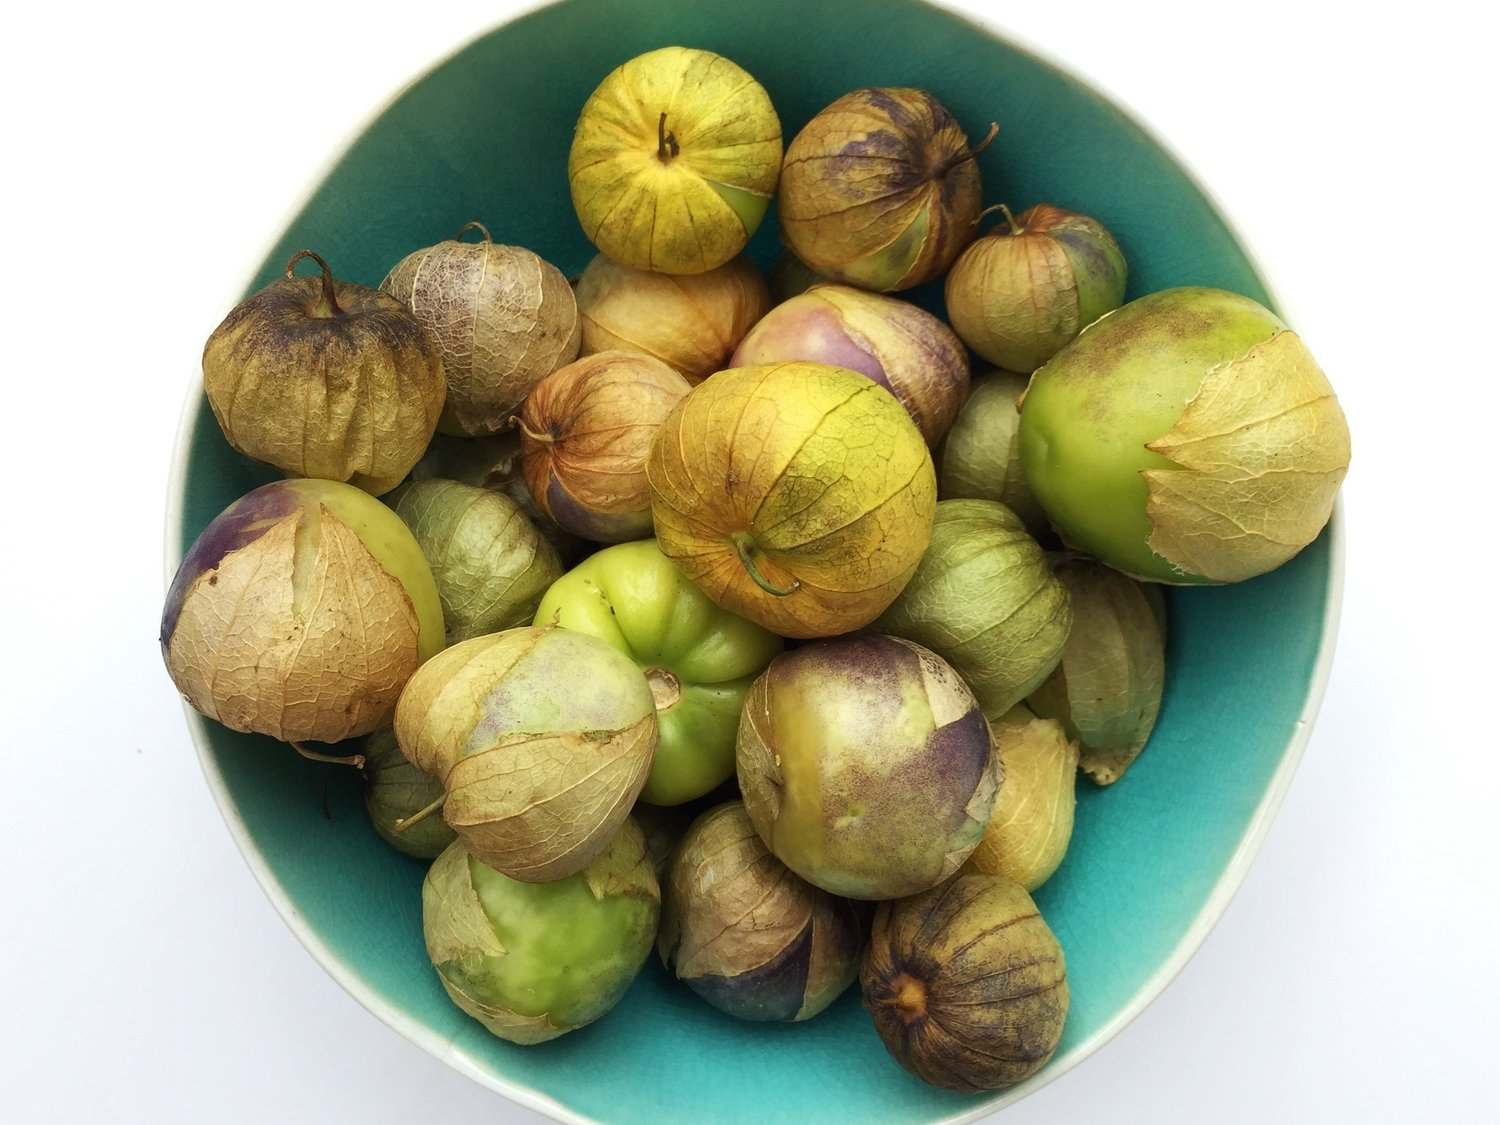 Tomatillos ready for Roasted Tomatillo Salsa in the Adventure Kitchen. Tomatillos can range from very pale to green to purplish. They grow inside a papery husk, enlarging to either completely fill - or more than fill - the husk when fully grown. When you remove the husks and rinse the tomatillos, you may notice they feel slightly sticky - this is normal. Once they are cooked, this stickiness will no longer be present.